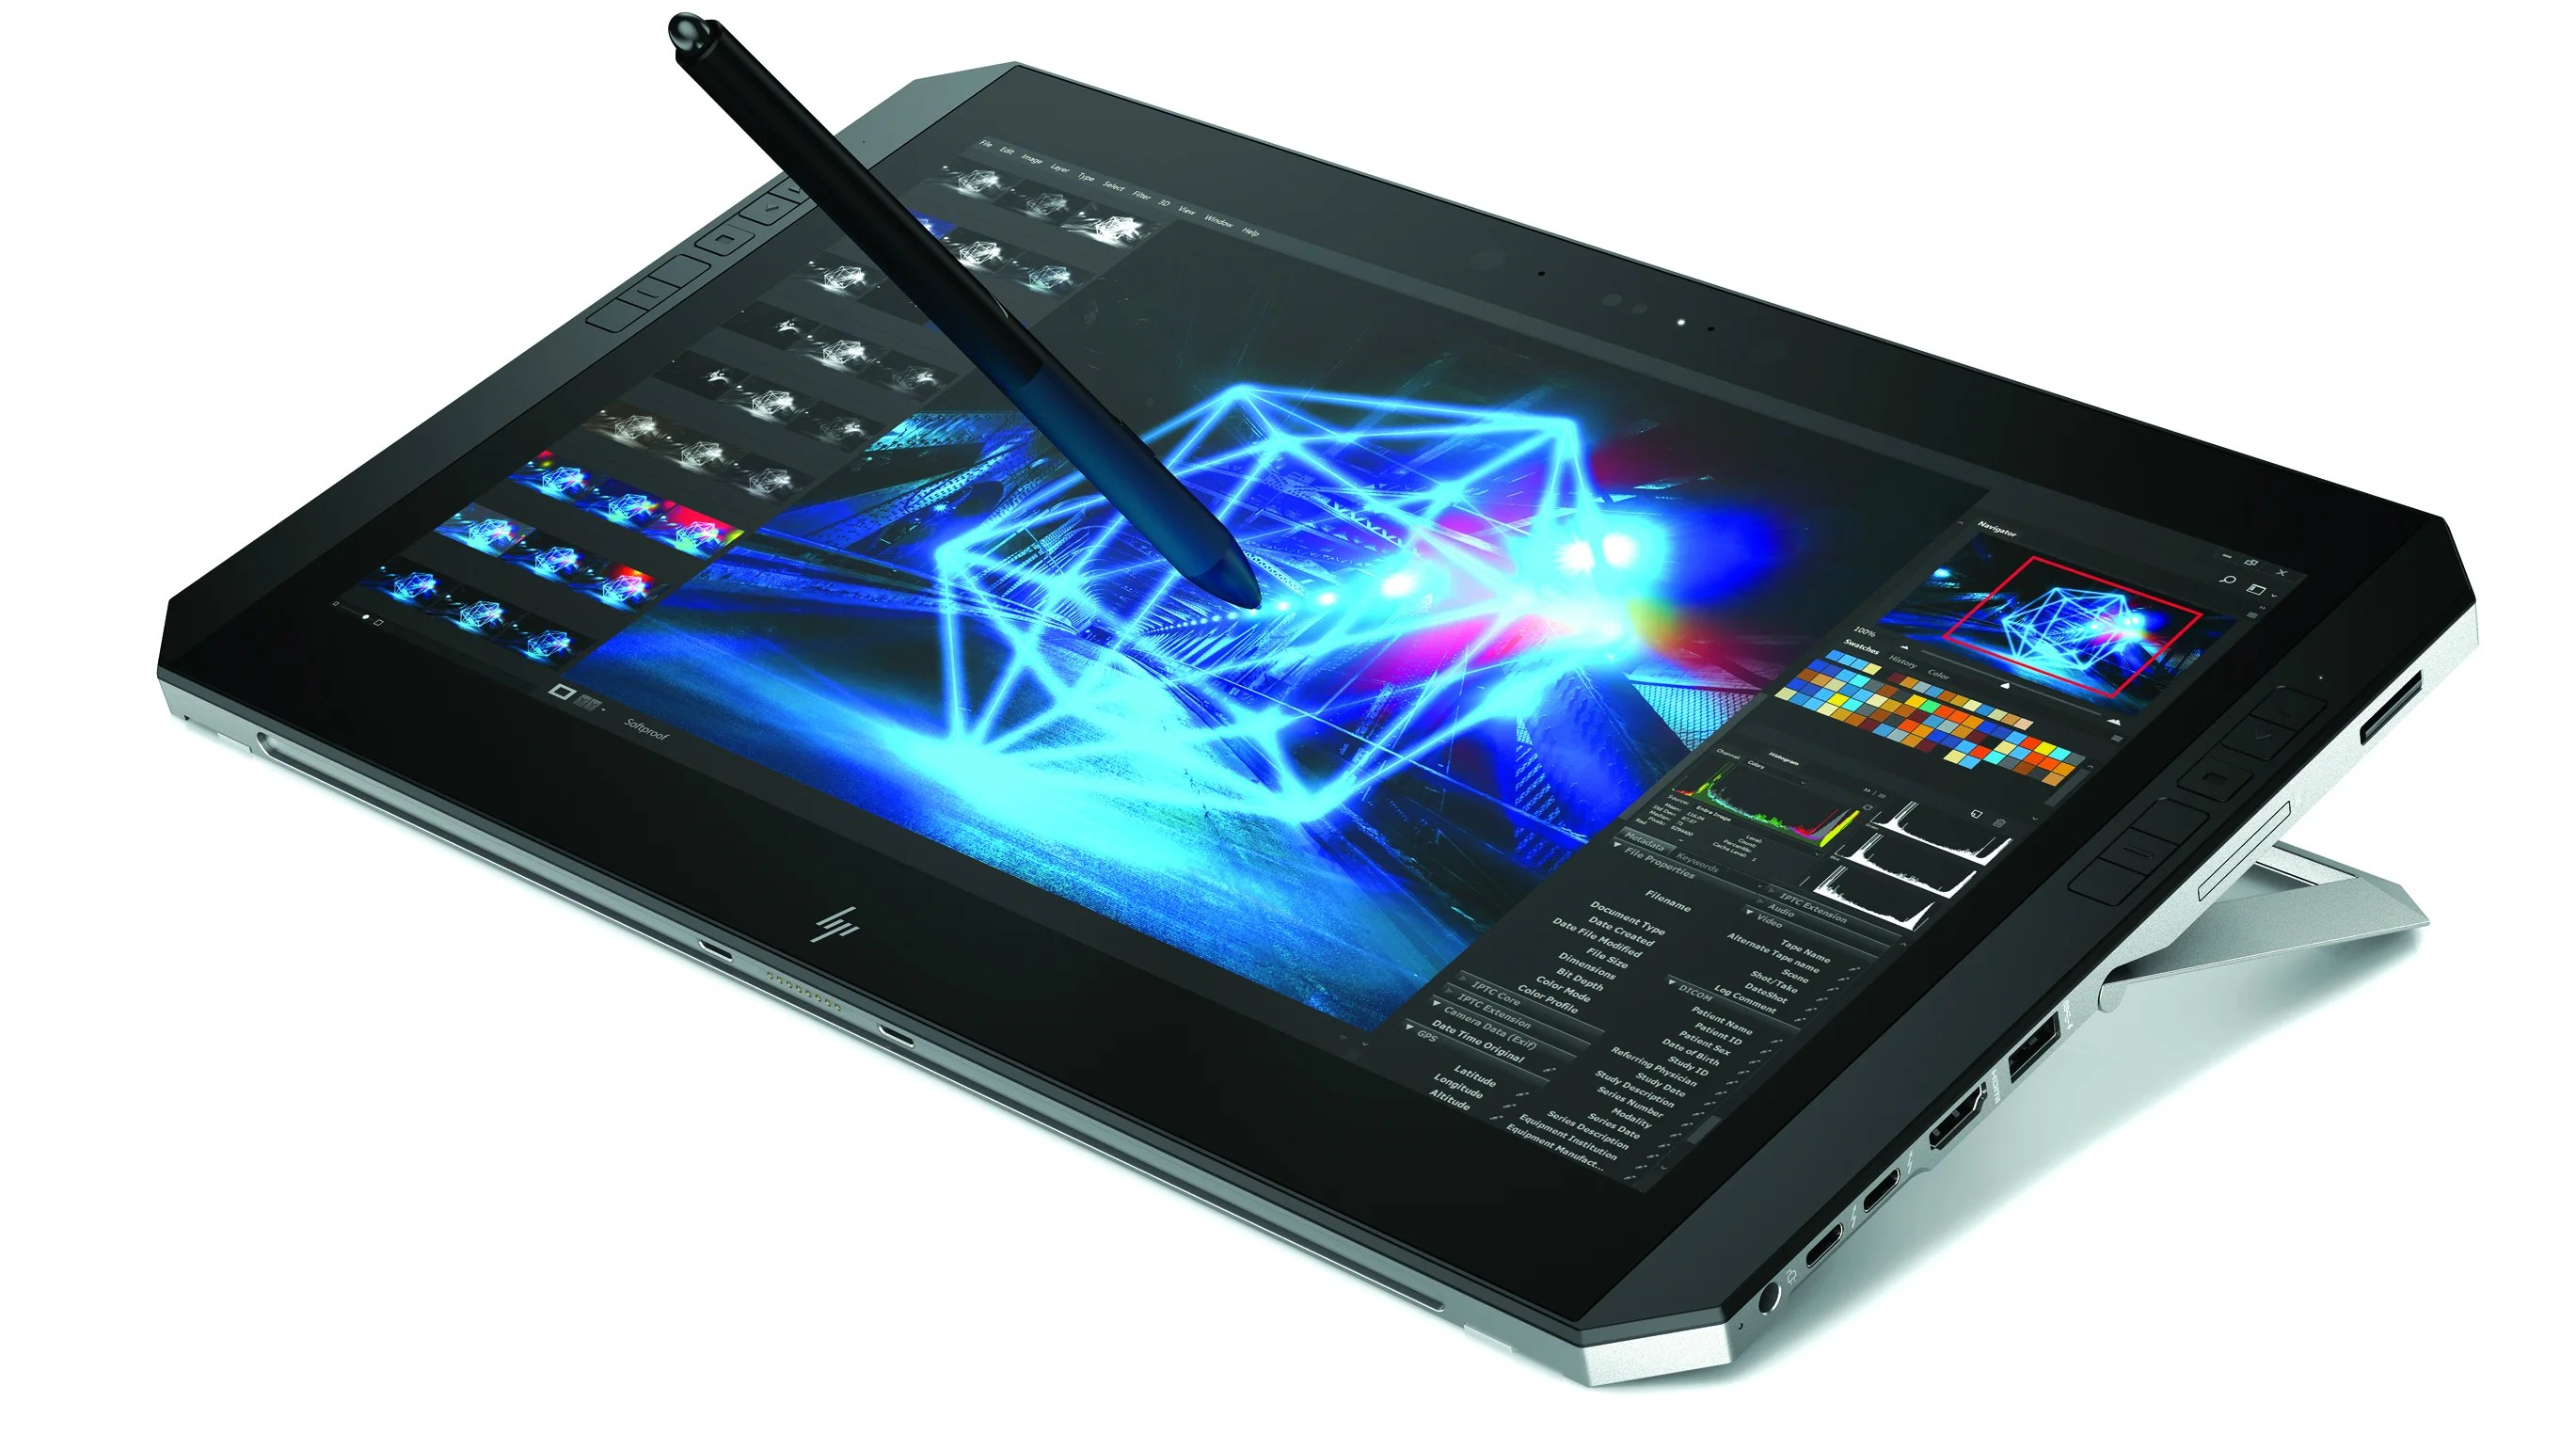 Hp Zbook X2 G4 Workstation Review An Unbelievably